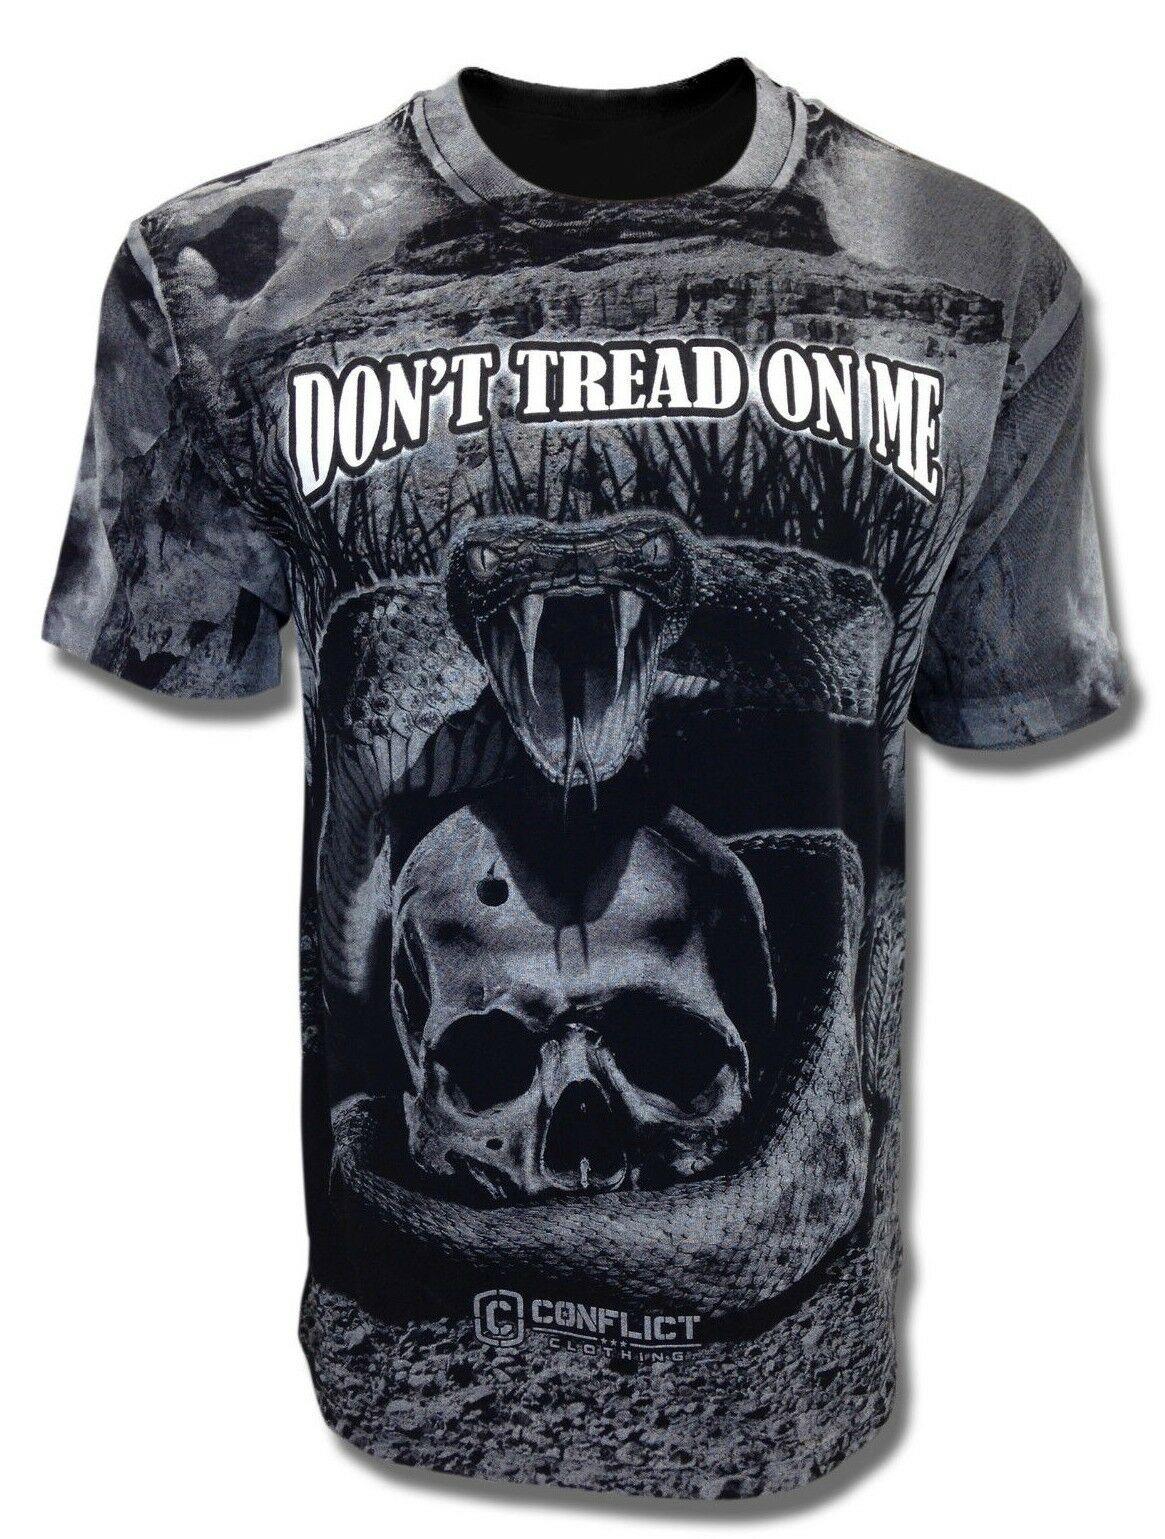 6581aa16fc9c Dont tread on me t-shirt rattlesnake all over print conflict clothing